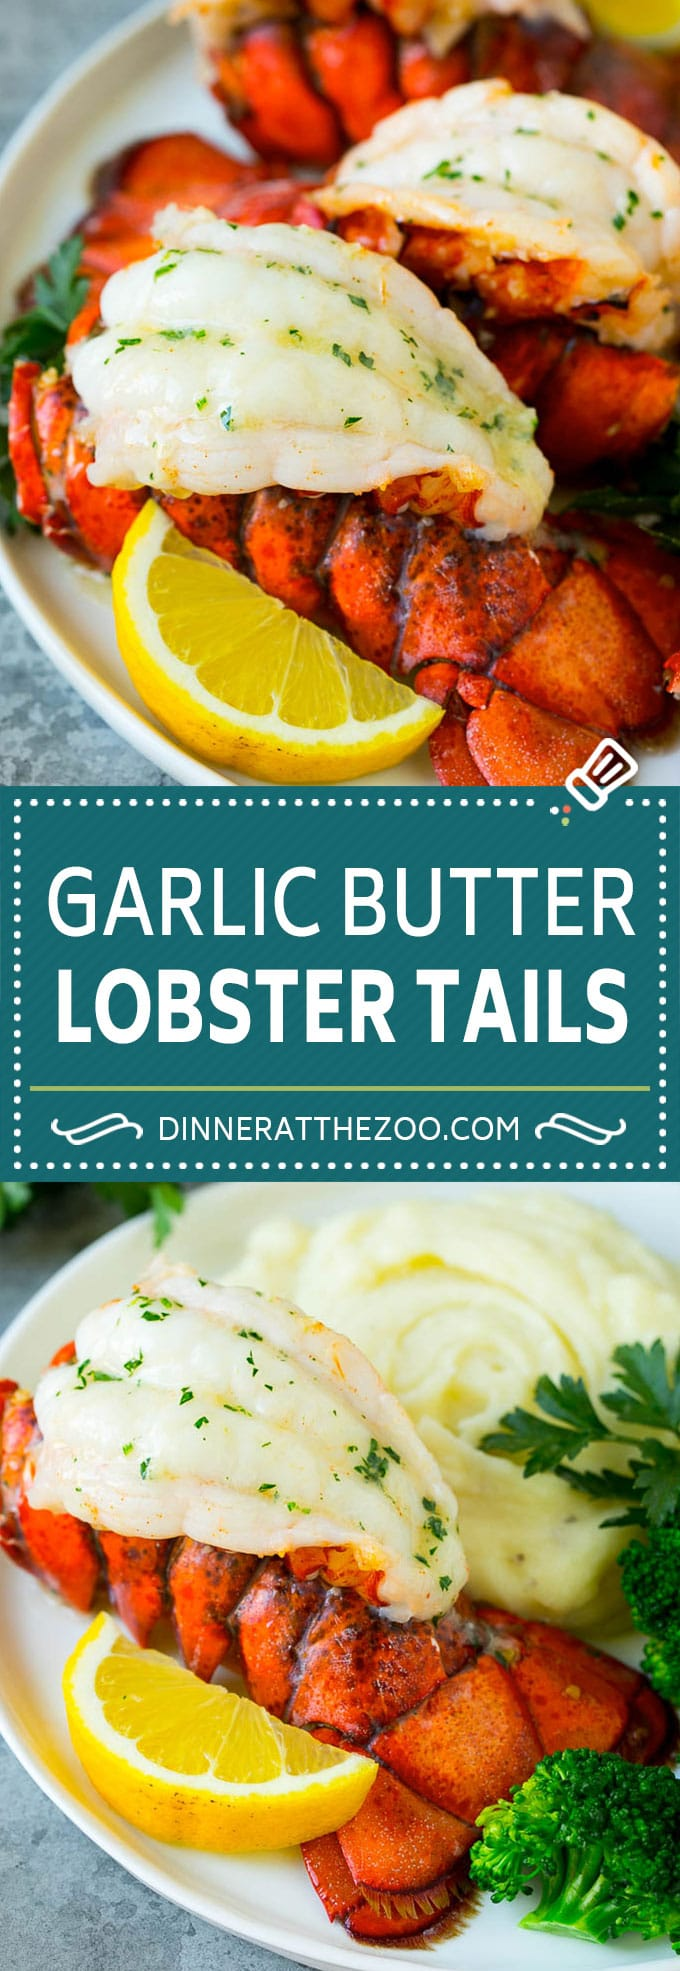 Garlic Butter Lobster Tails Recipe | Broiled Lobster Tails | Lobster Recipe #lobster #seafood #butter #keto #lowcarb #glutenfree #dinner #dinneratthezoo